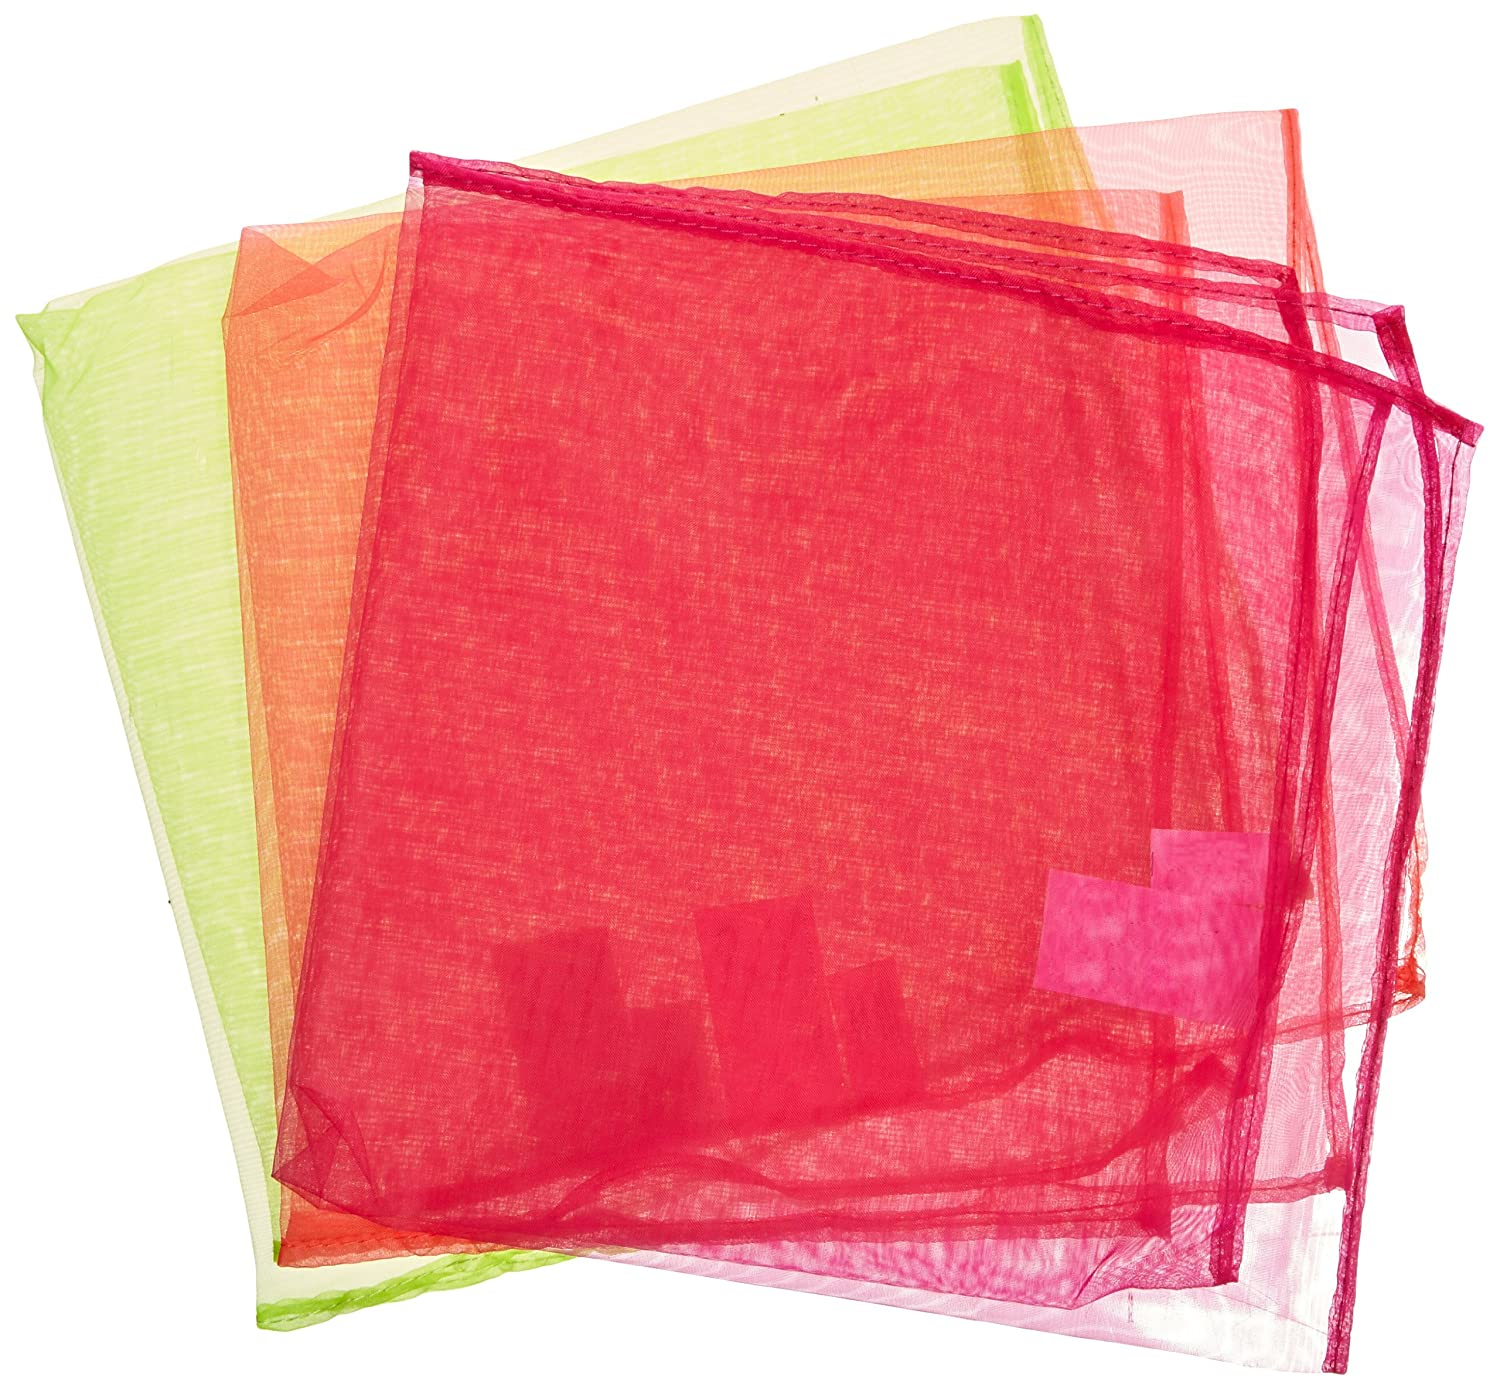 Juggletime Nylon Juggling Scarves with Instructions - Set of 108 - Assorted Neon Colors 152720